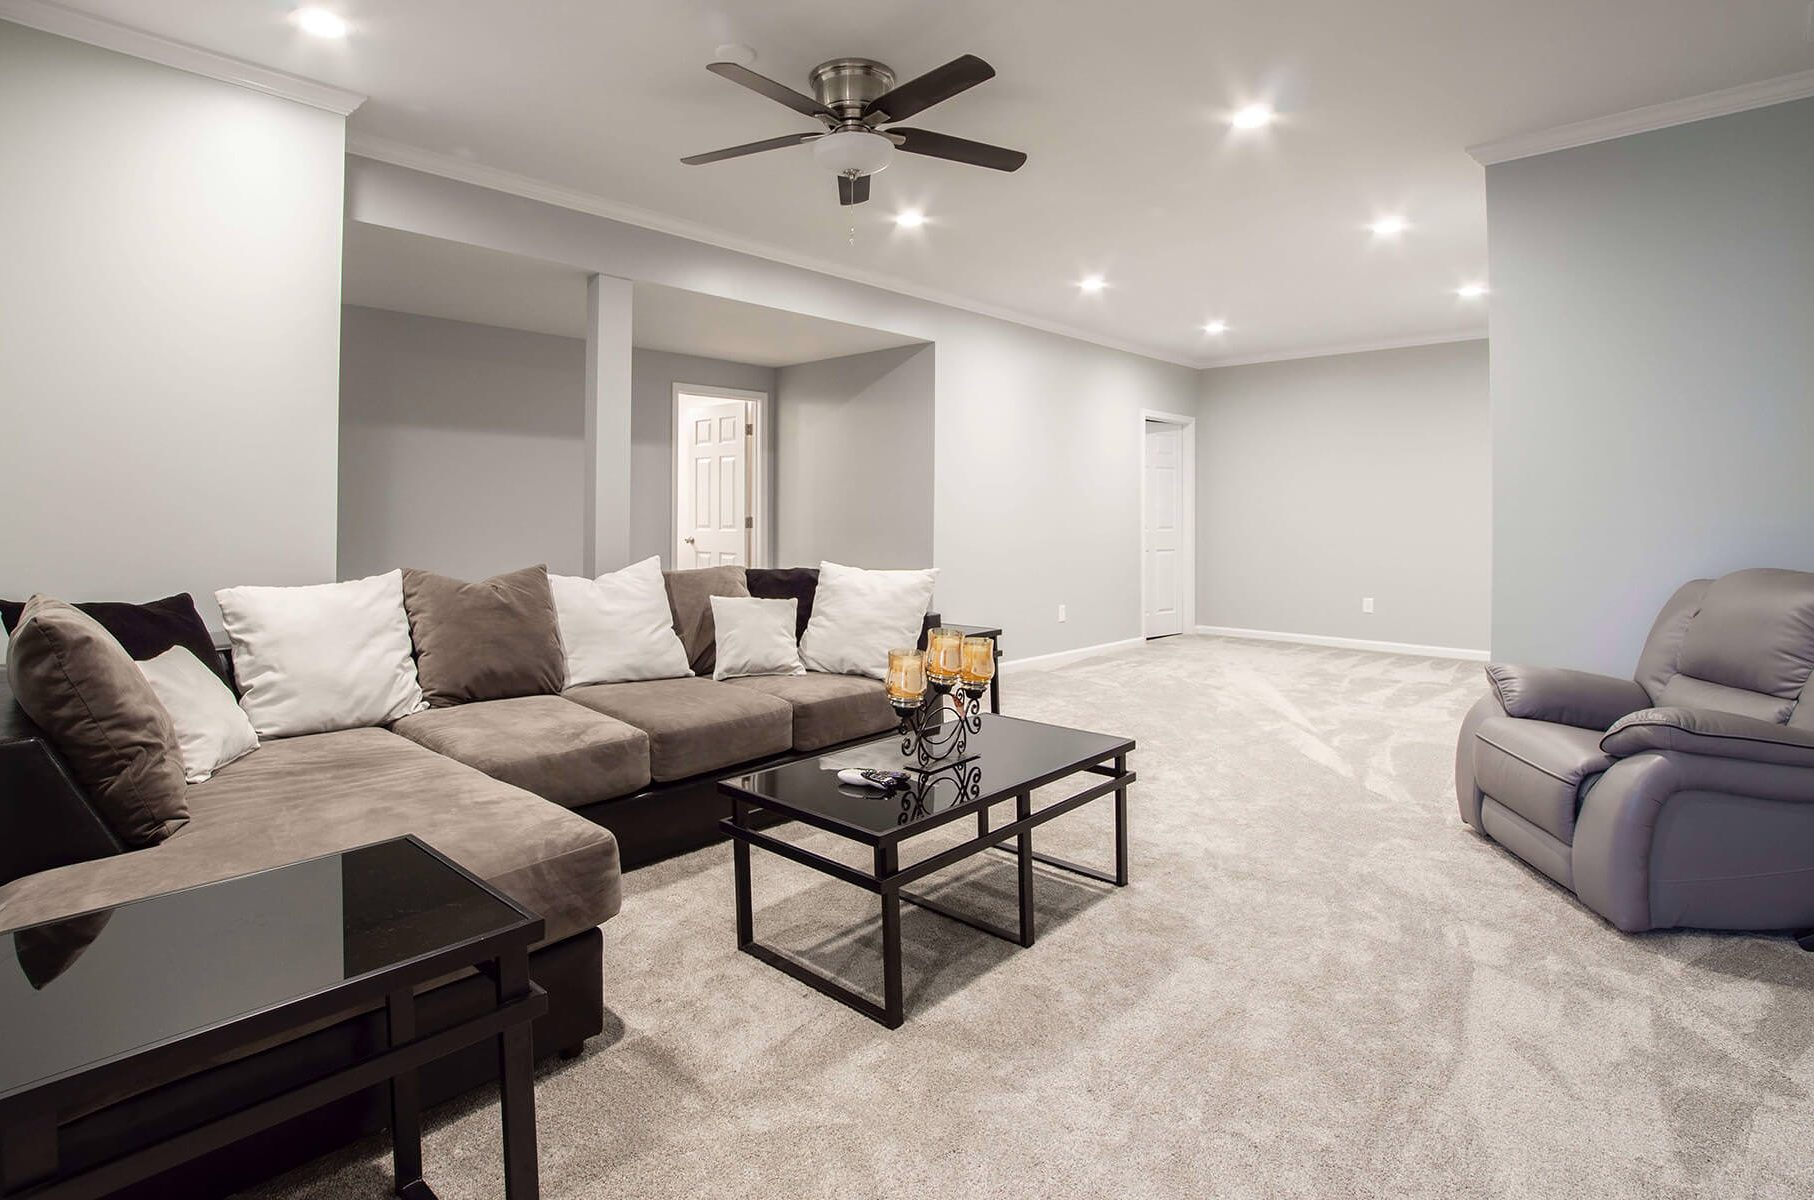 Wall to wall carpeting with Simple Flooring Co. Choose your best flooring solution!